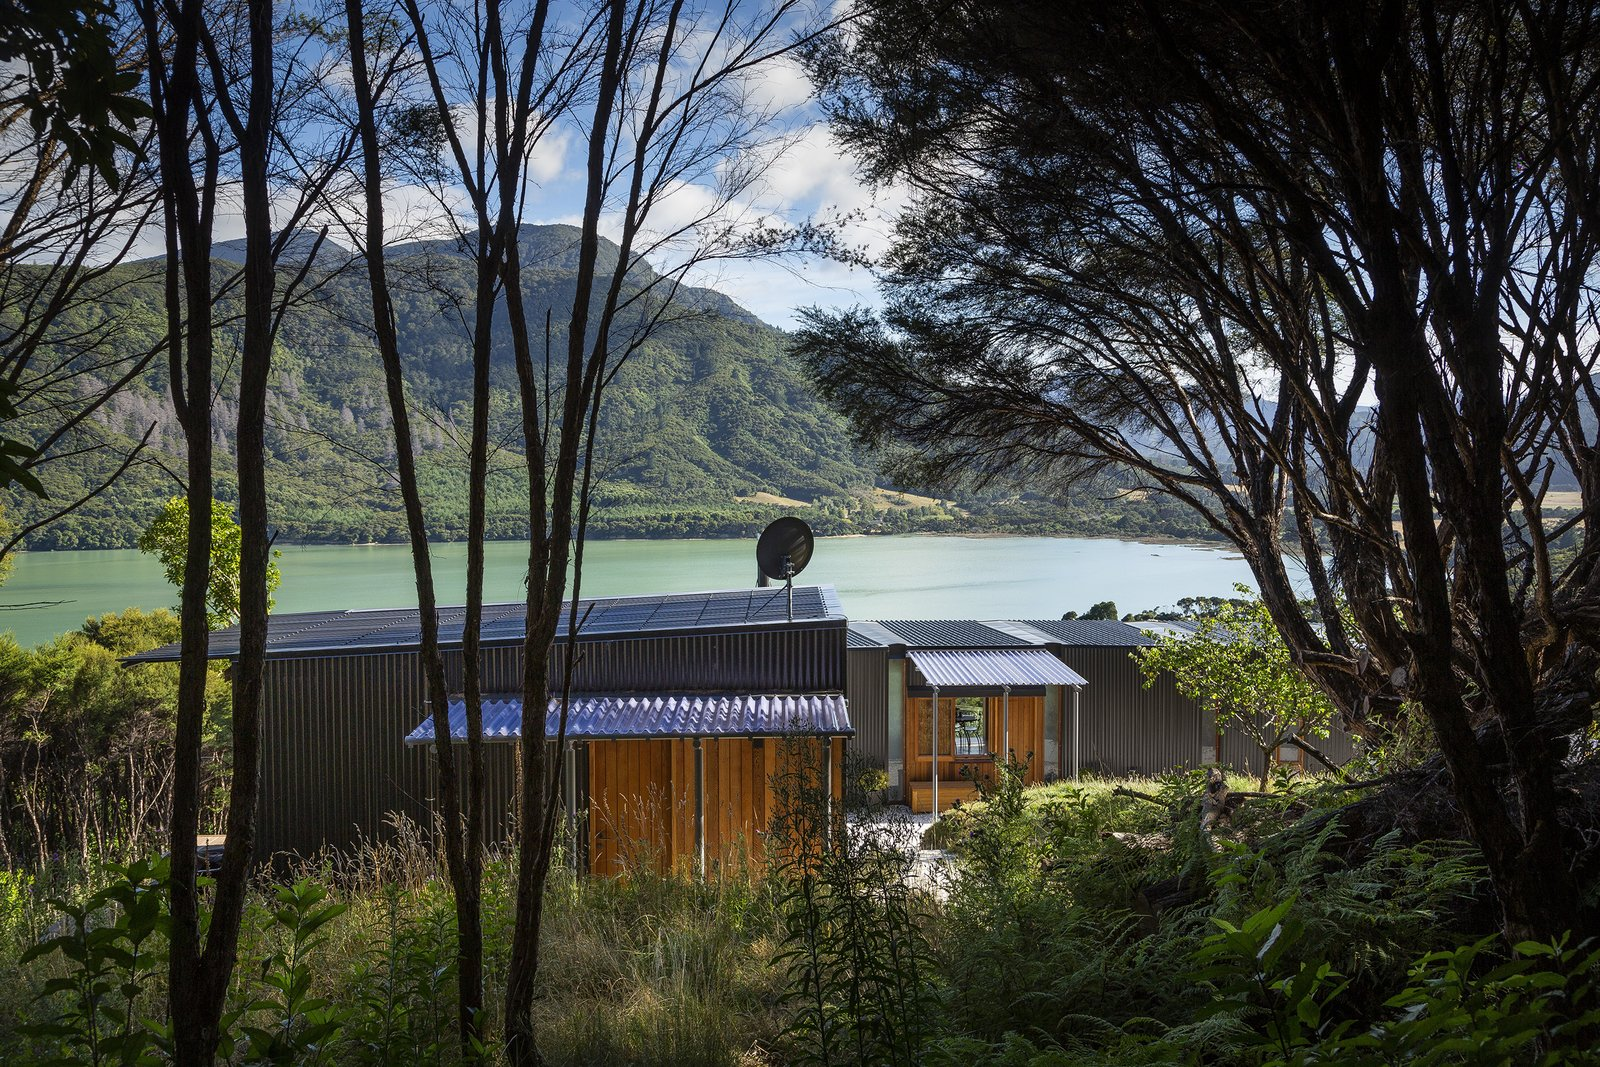 This Prefab Home in New Zealand Makes the Most of Stunning Views While Sitting Lightly on the Land